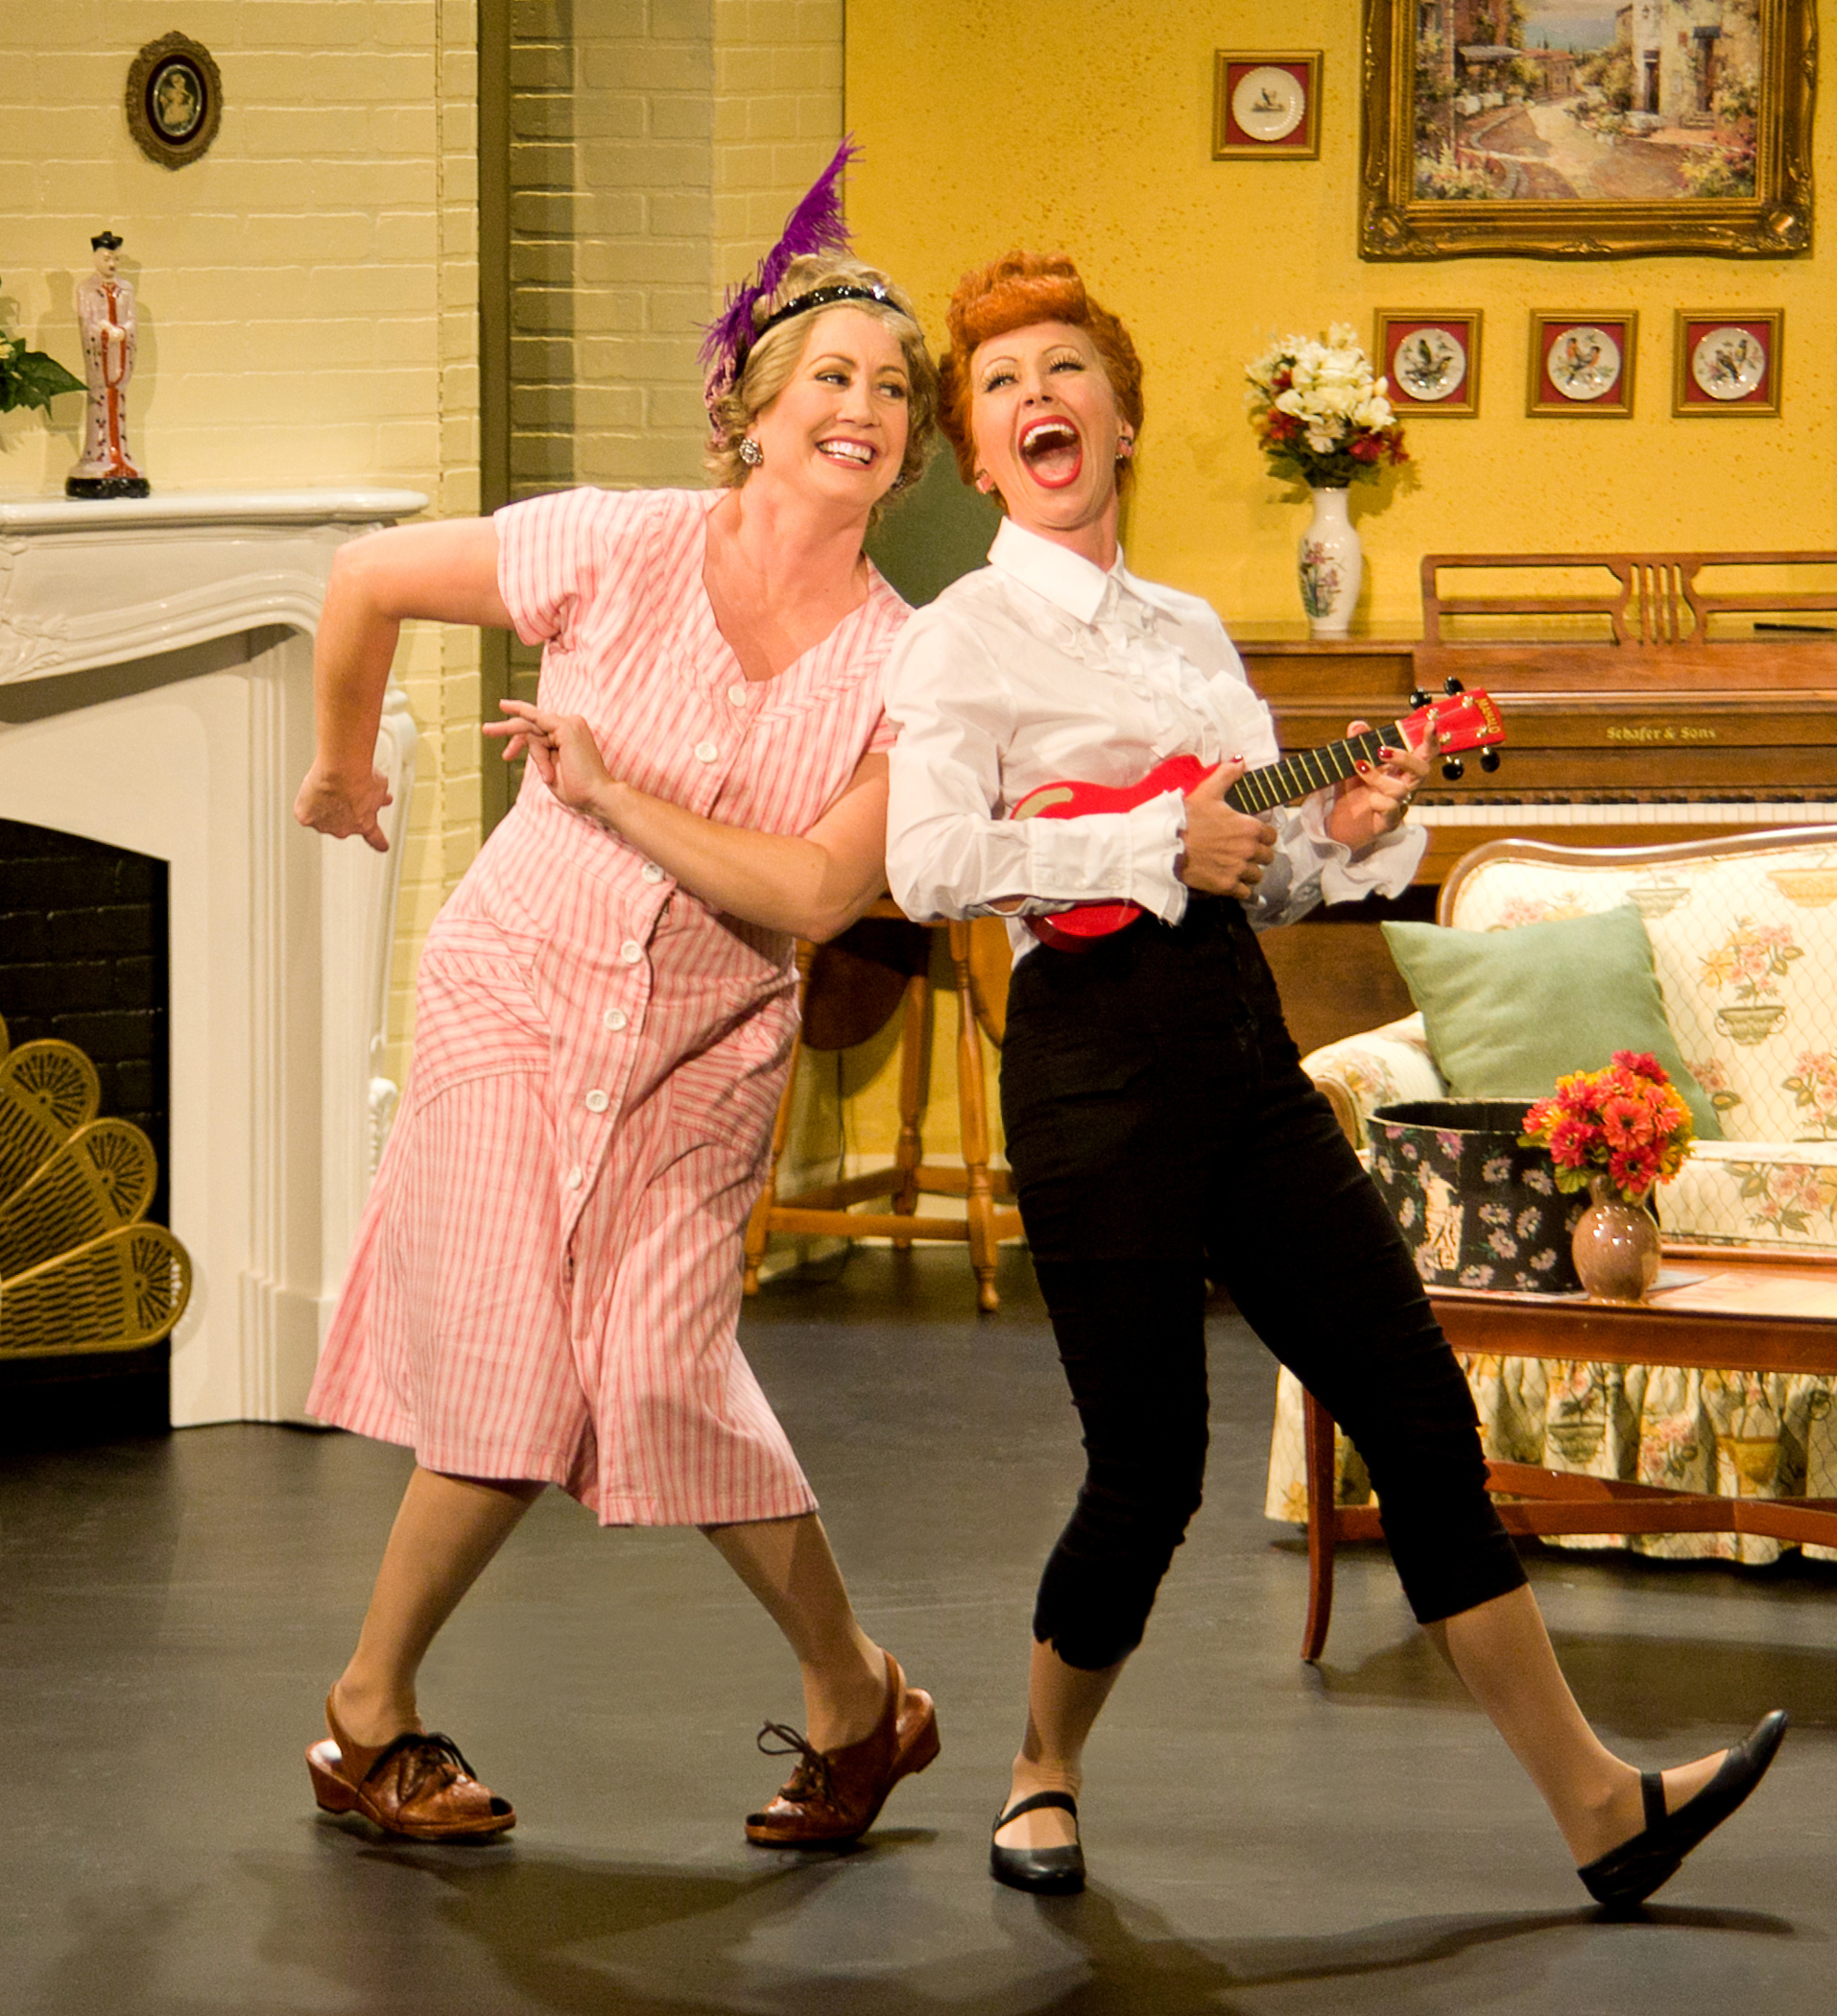 Joanna Daniels as Ethel and Sirena Irwin as Lucy in I LOVE LUCY® LIVE ON STAGE. Photo by JustinBarbin.com)